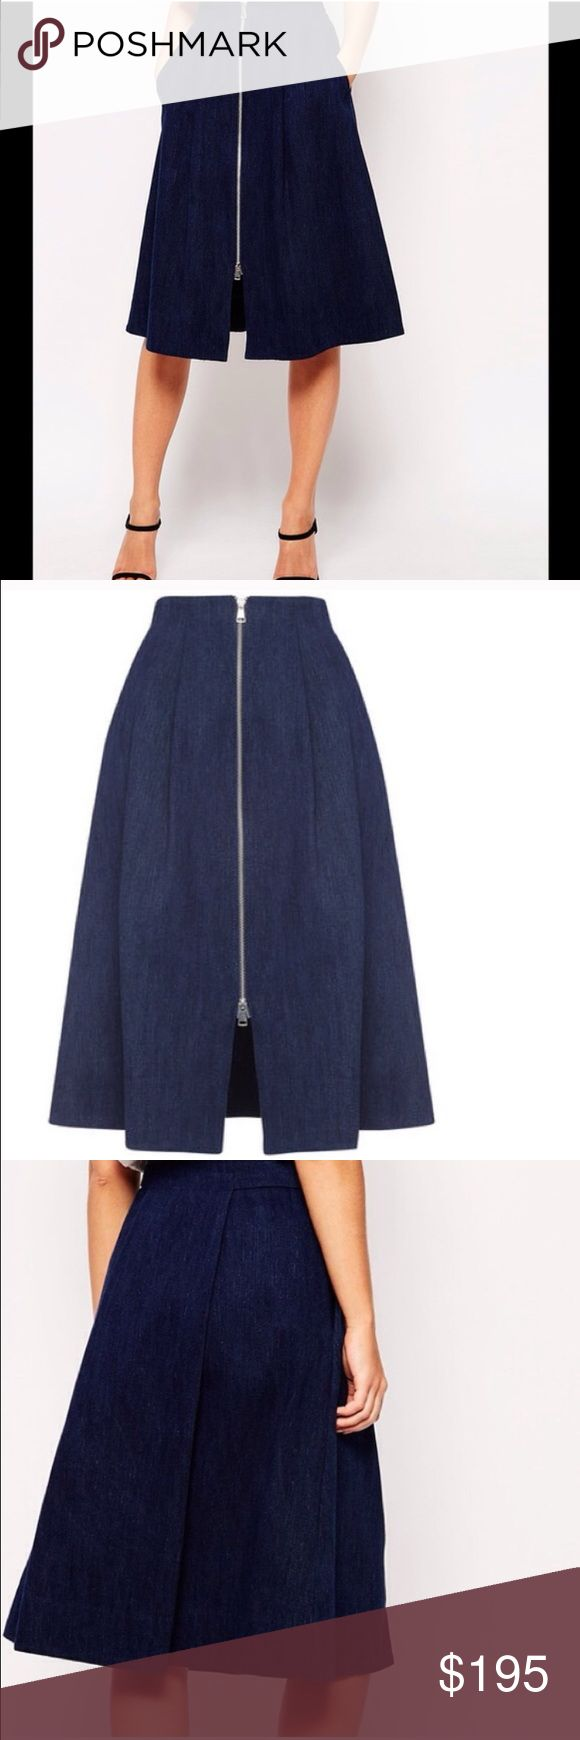 NWT Whistles Dark Denim Zip Through Midi Skirt From British retailer WHISTLES comes this brand new skirt. 100% denim, a-line skirt with a fitted waist & flattering pleats. Deep front pockets on the hip. NWT. Waist 26 x length 28. UK10/US6 Whistles Skirts A-Line or Full